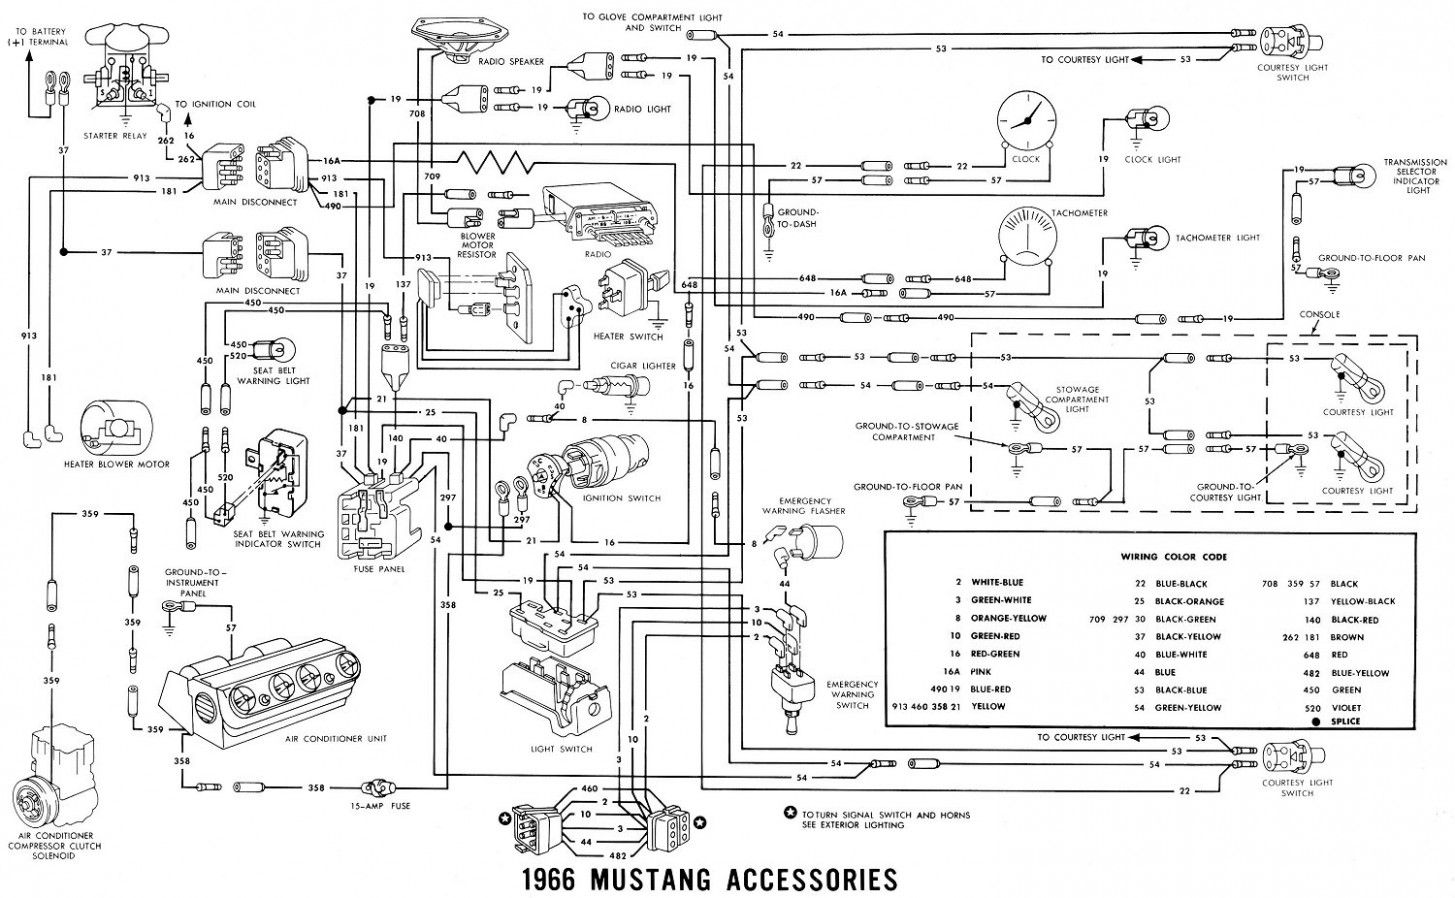 8 Mustang Engine Bay Wiring Diagram In 2020 Diagram Mustang Mustang Engine